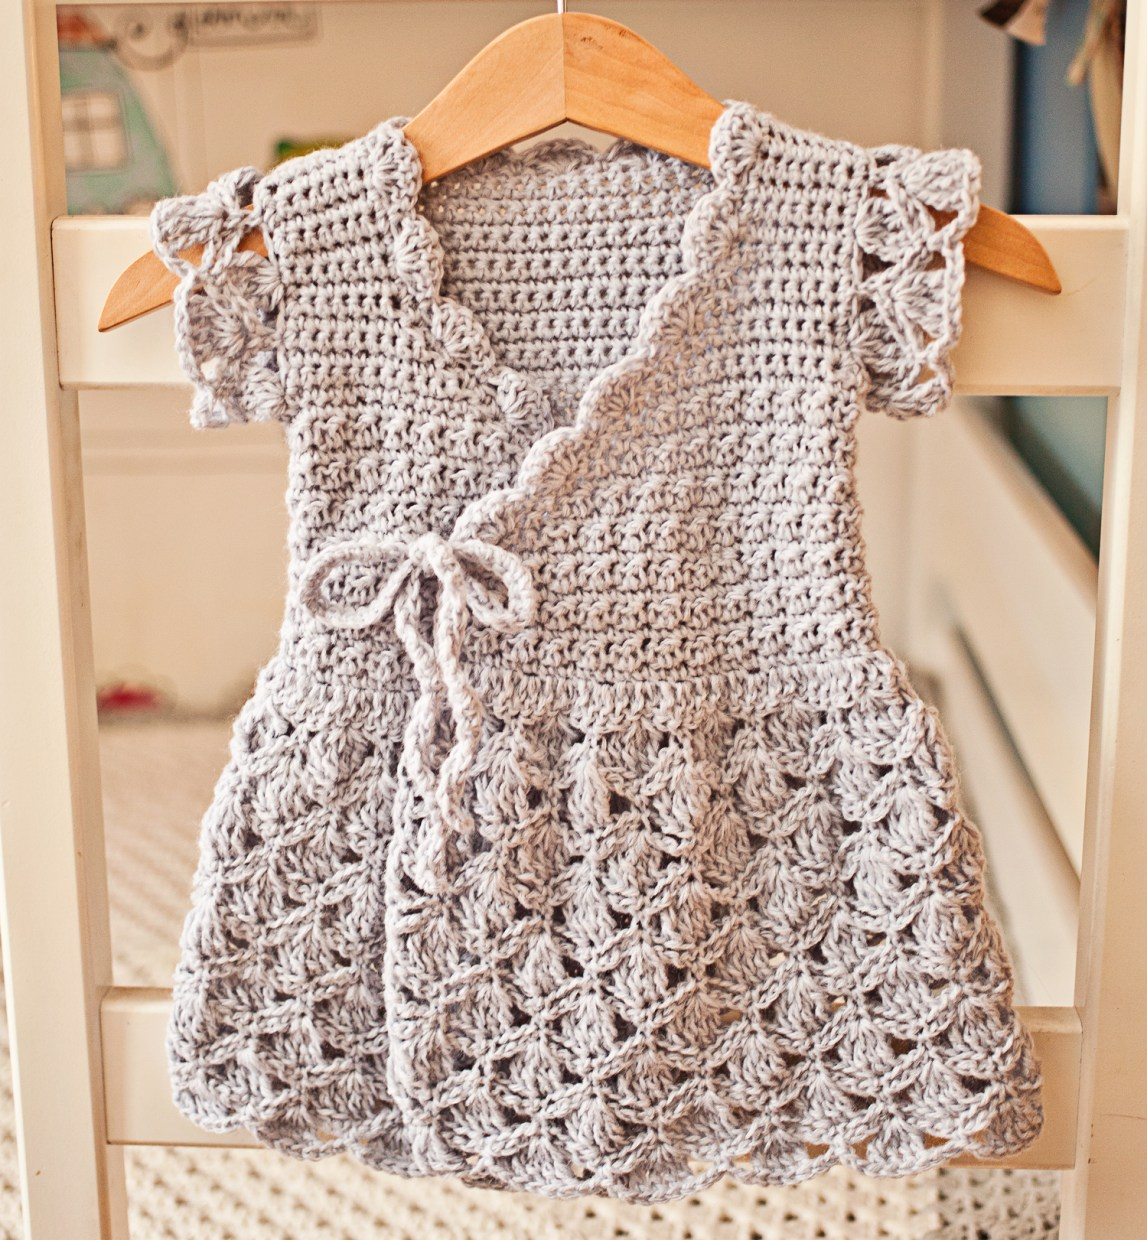 Lavender Wrap Dress, crochet pattern by Mon Petit Violon